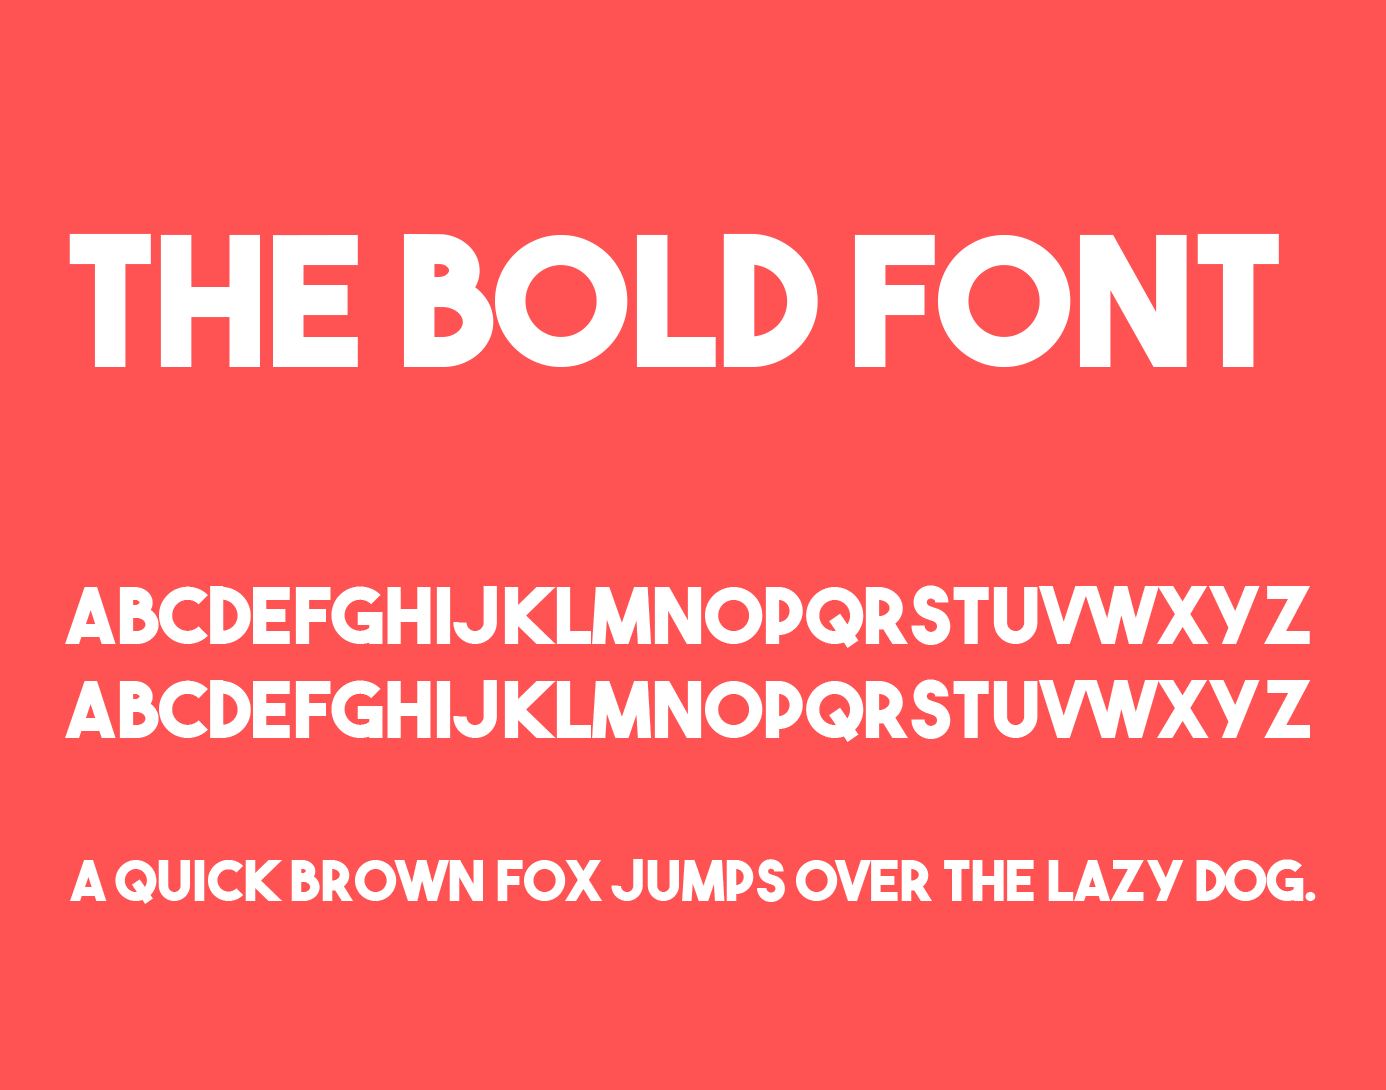 https://fontclarity.com/wp-content/uploads/2019/09/the-bold-font-download-0.png Free Download